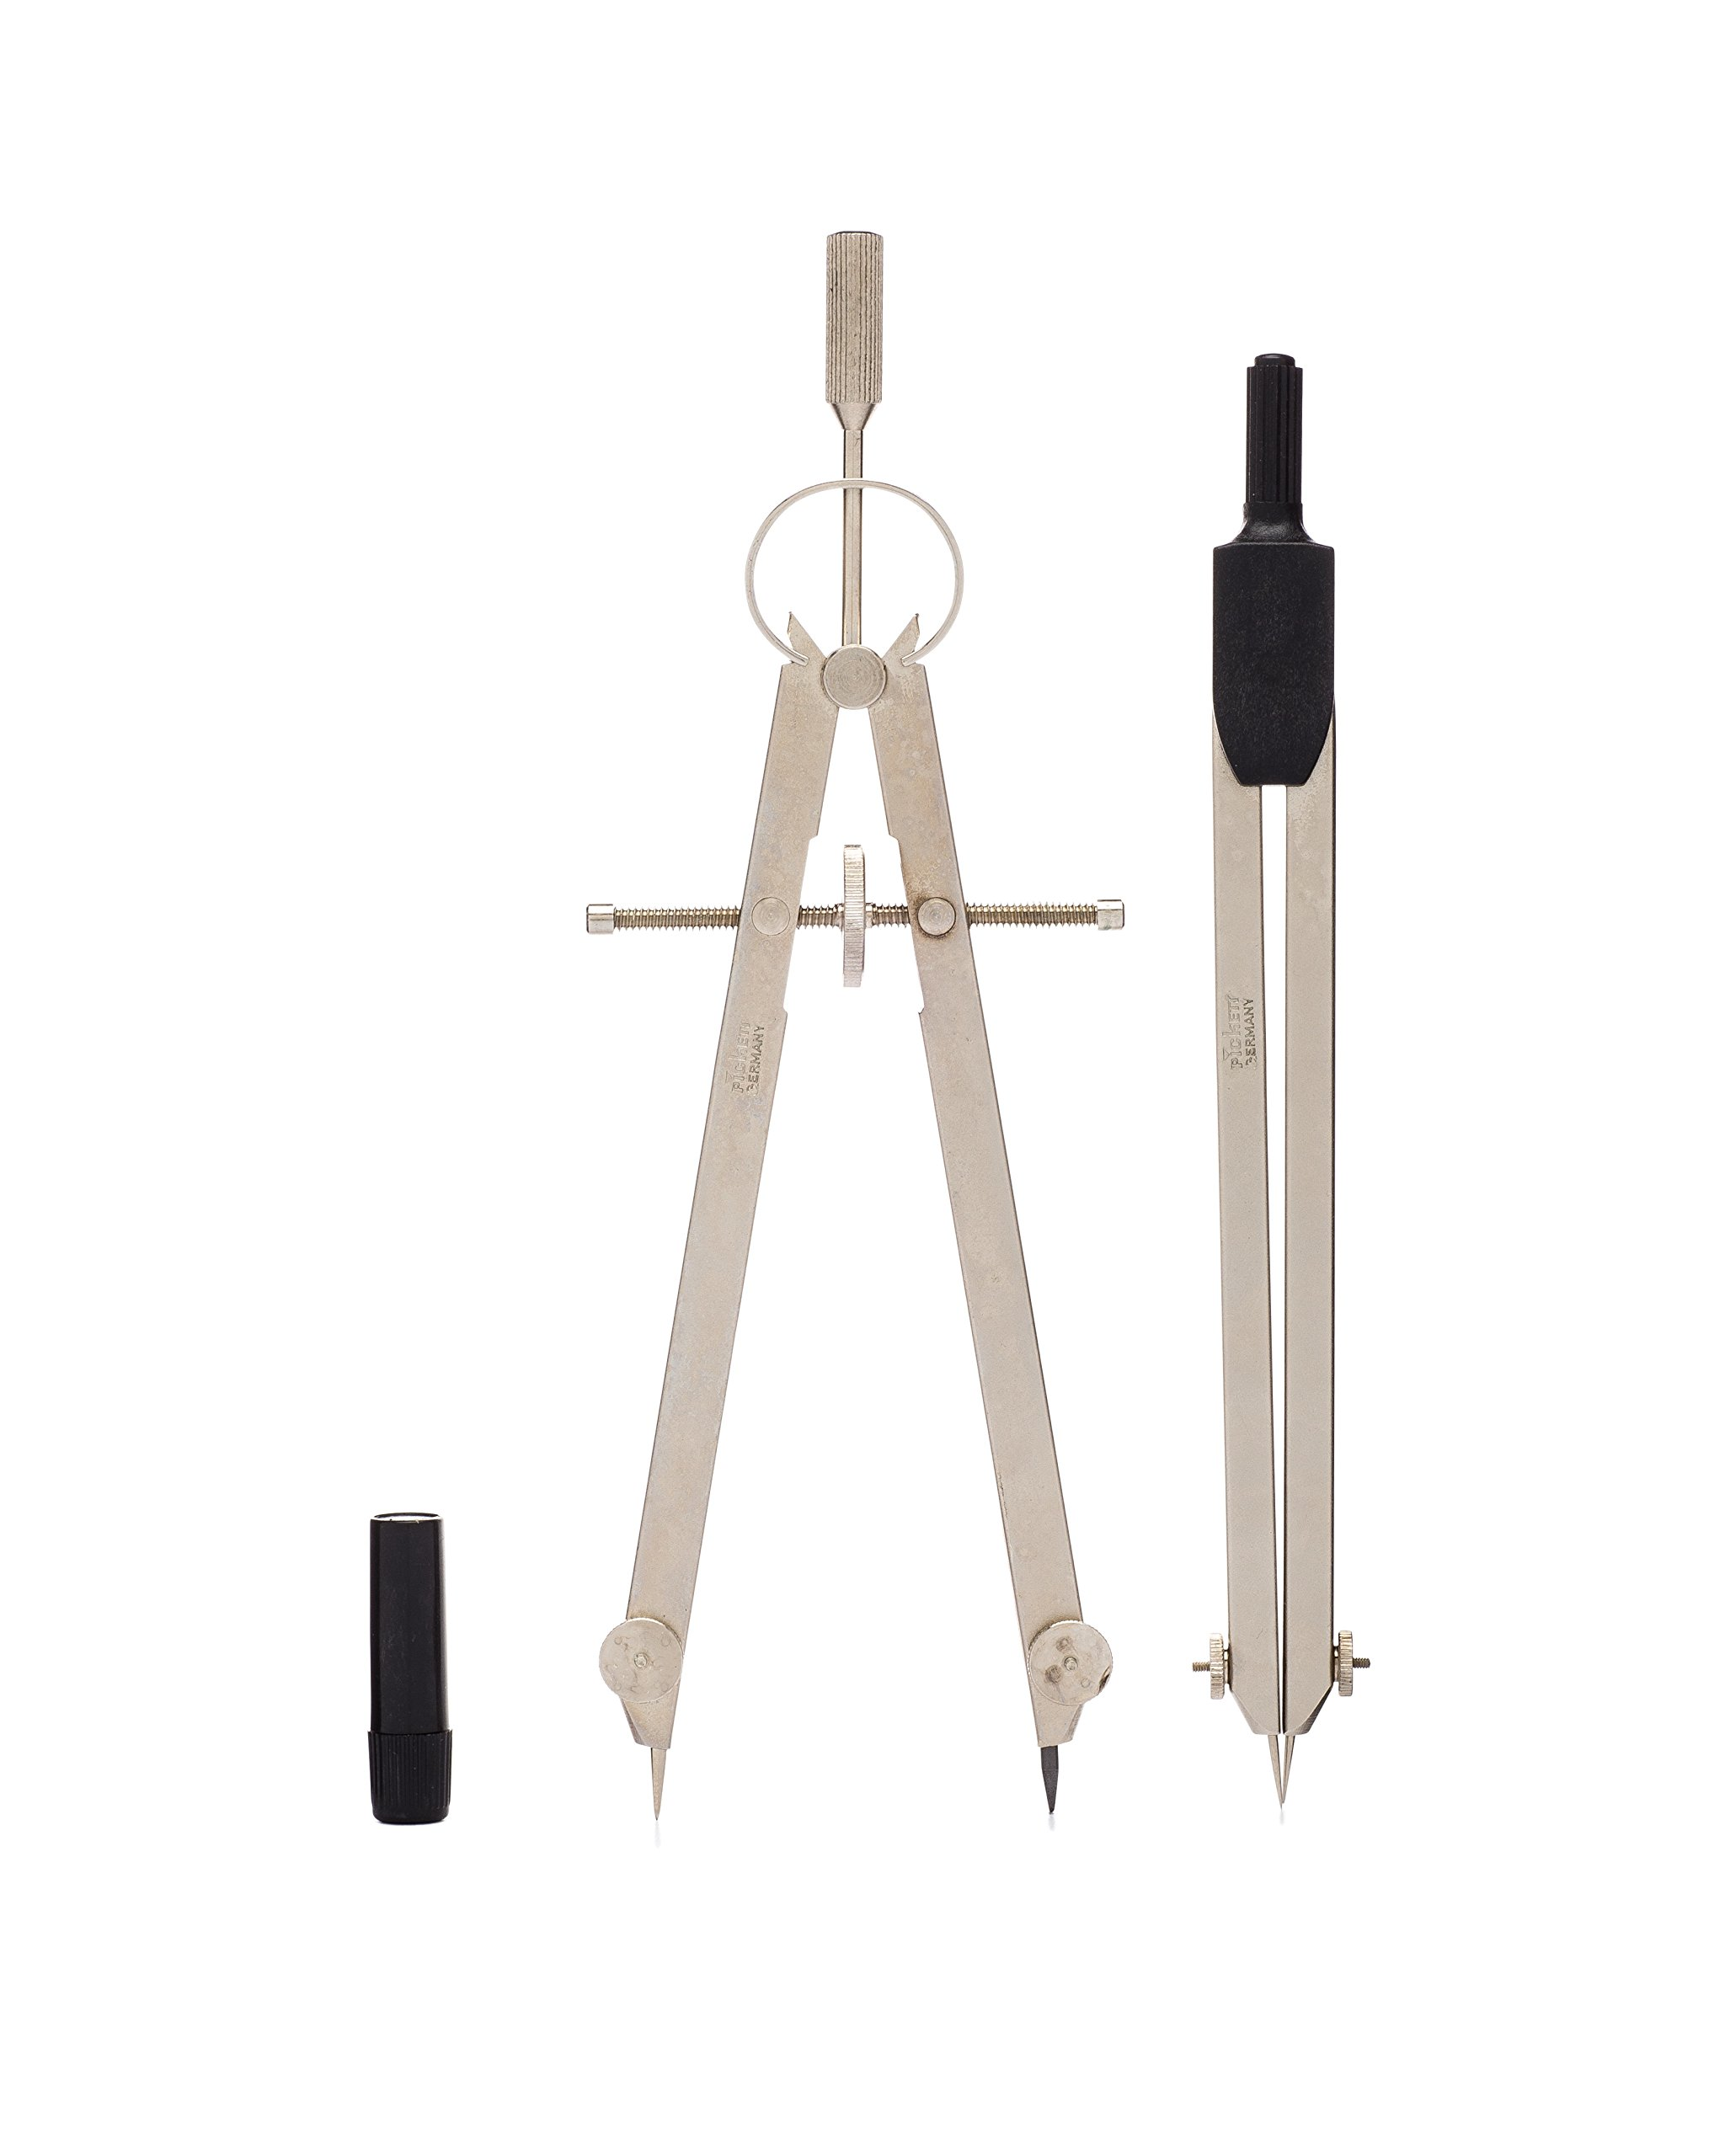 Pickett Professional 2-Piece Drafting Set, Includes Compass, Divider, Spare Leads and Points, 1 Each (1504N)